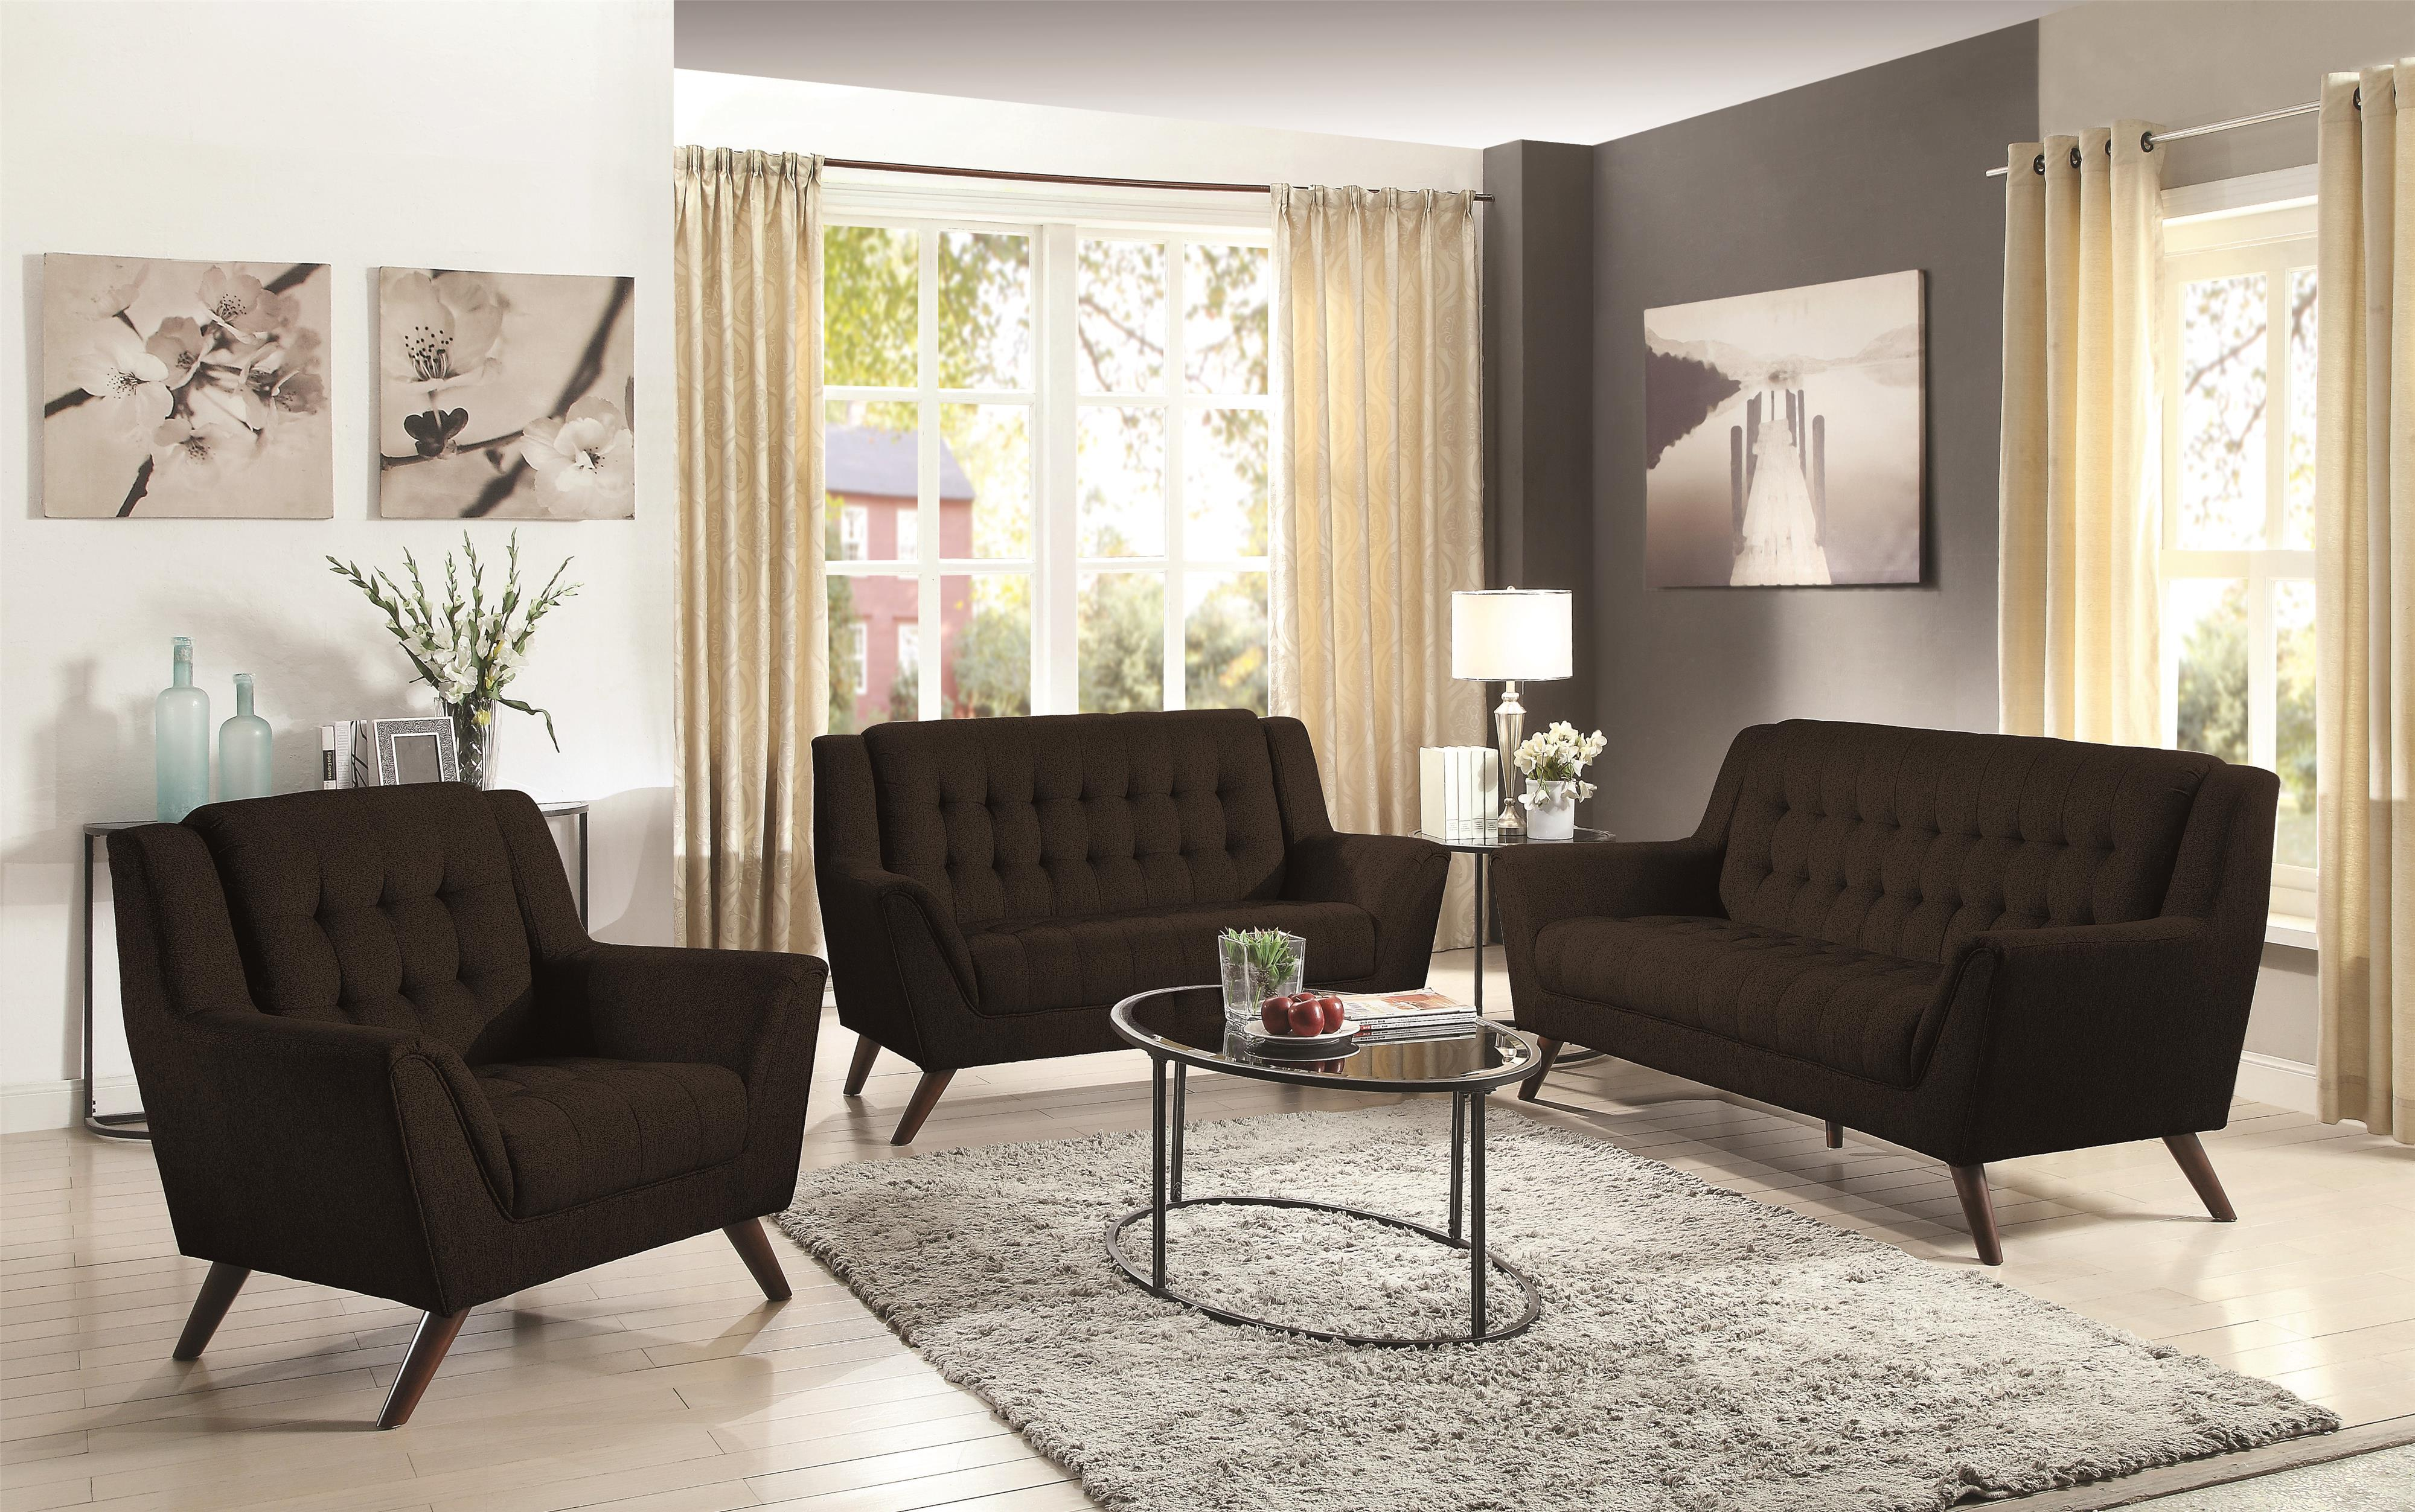 Coaster Baby Natalia Living Room Group - Item Number: 5110 Living Room Group 2